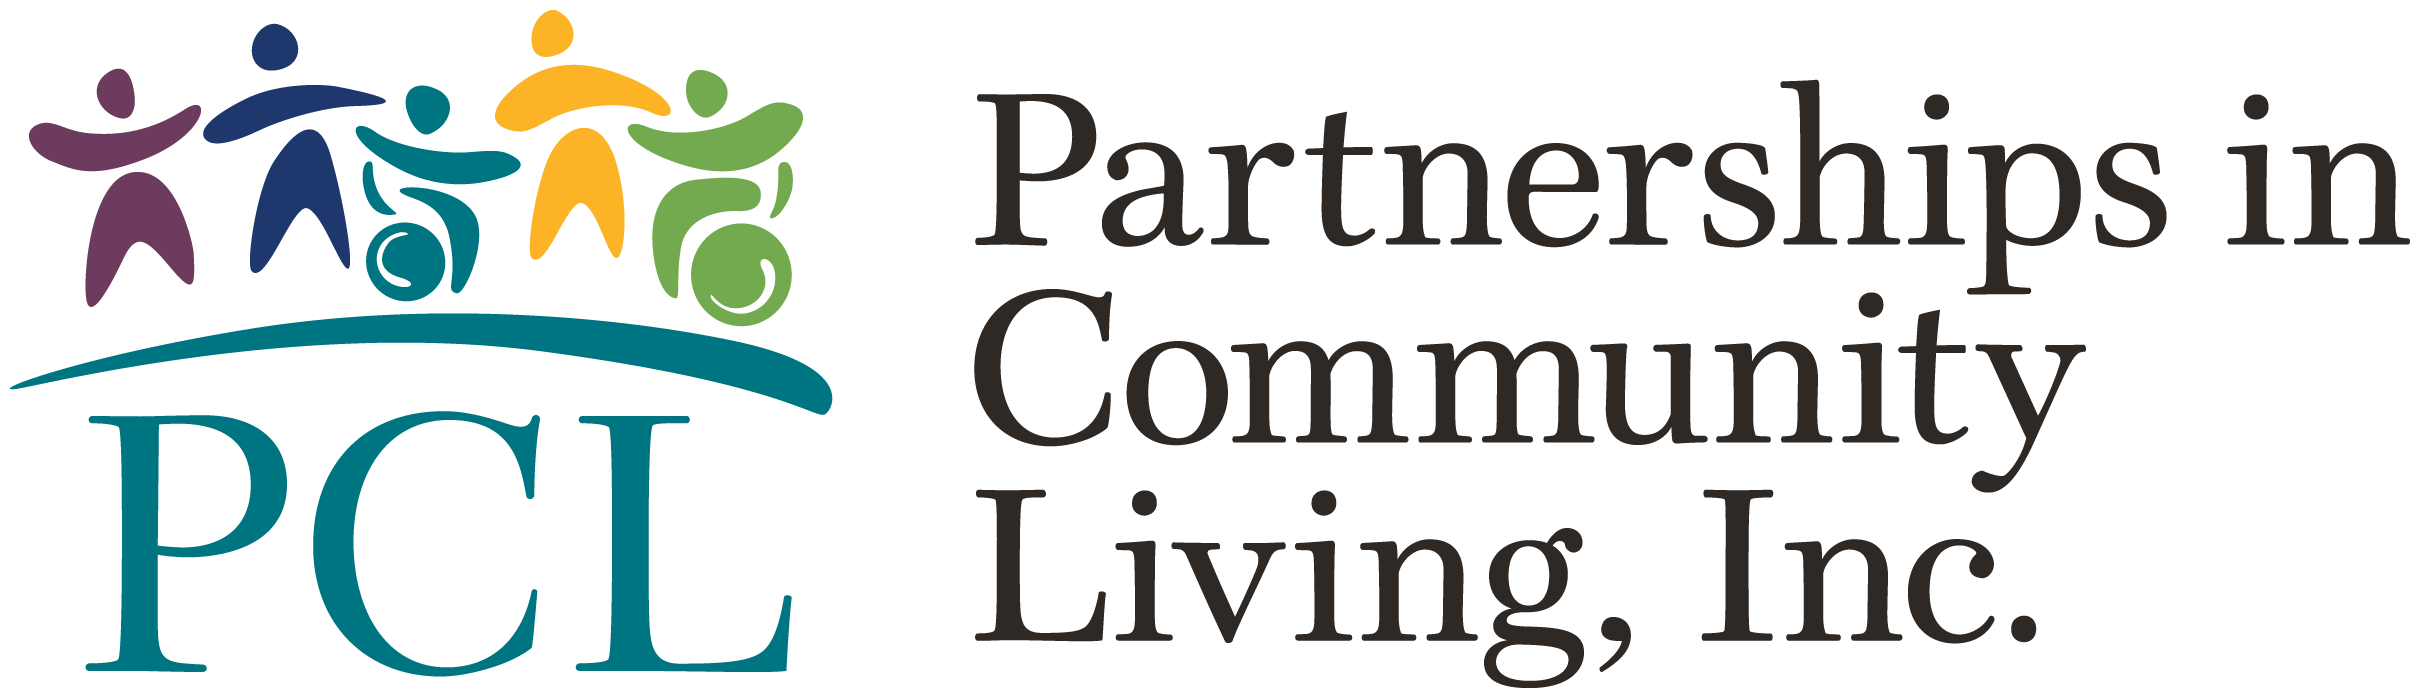 Partnerships in Community Living